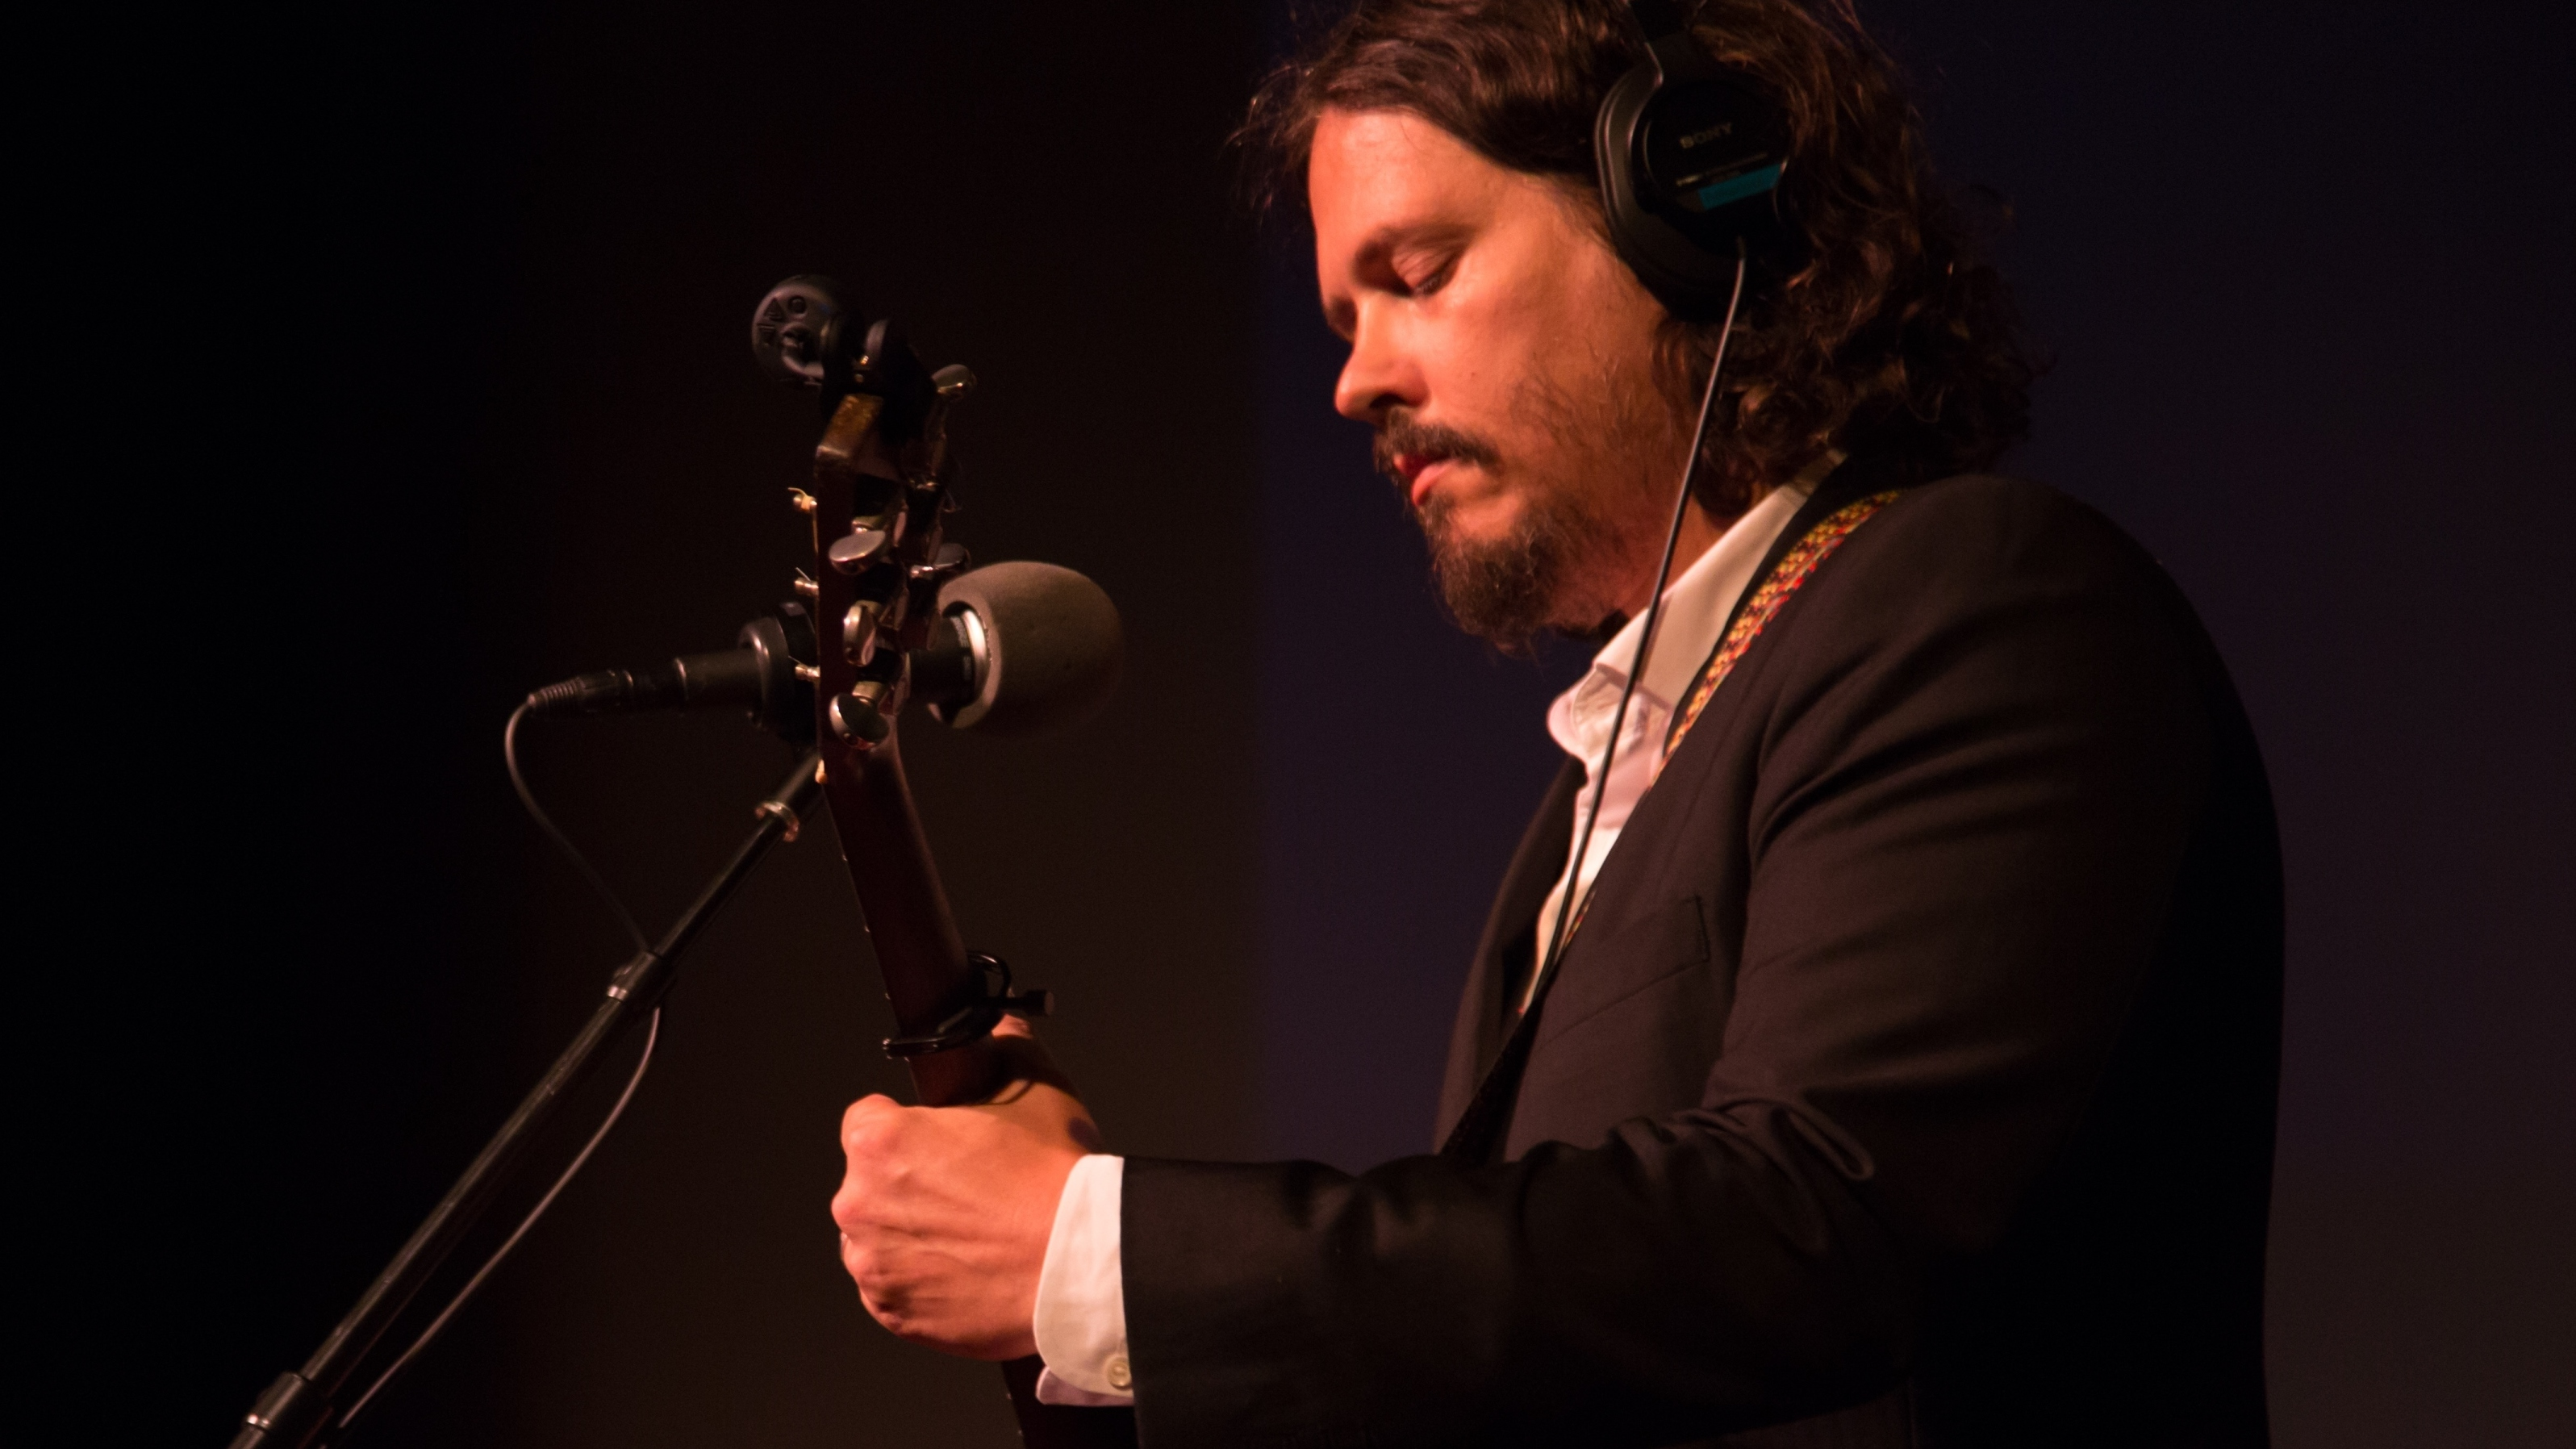 In Birmingham John Paul White Shares Songs And Stories